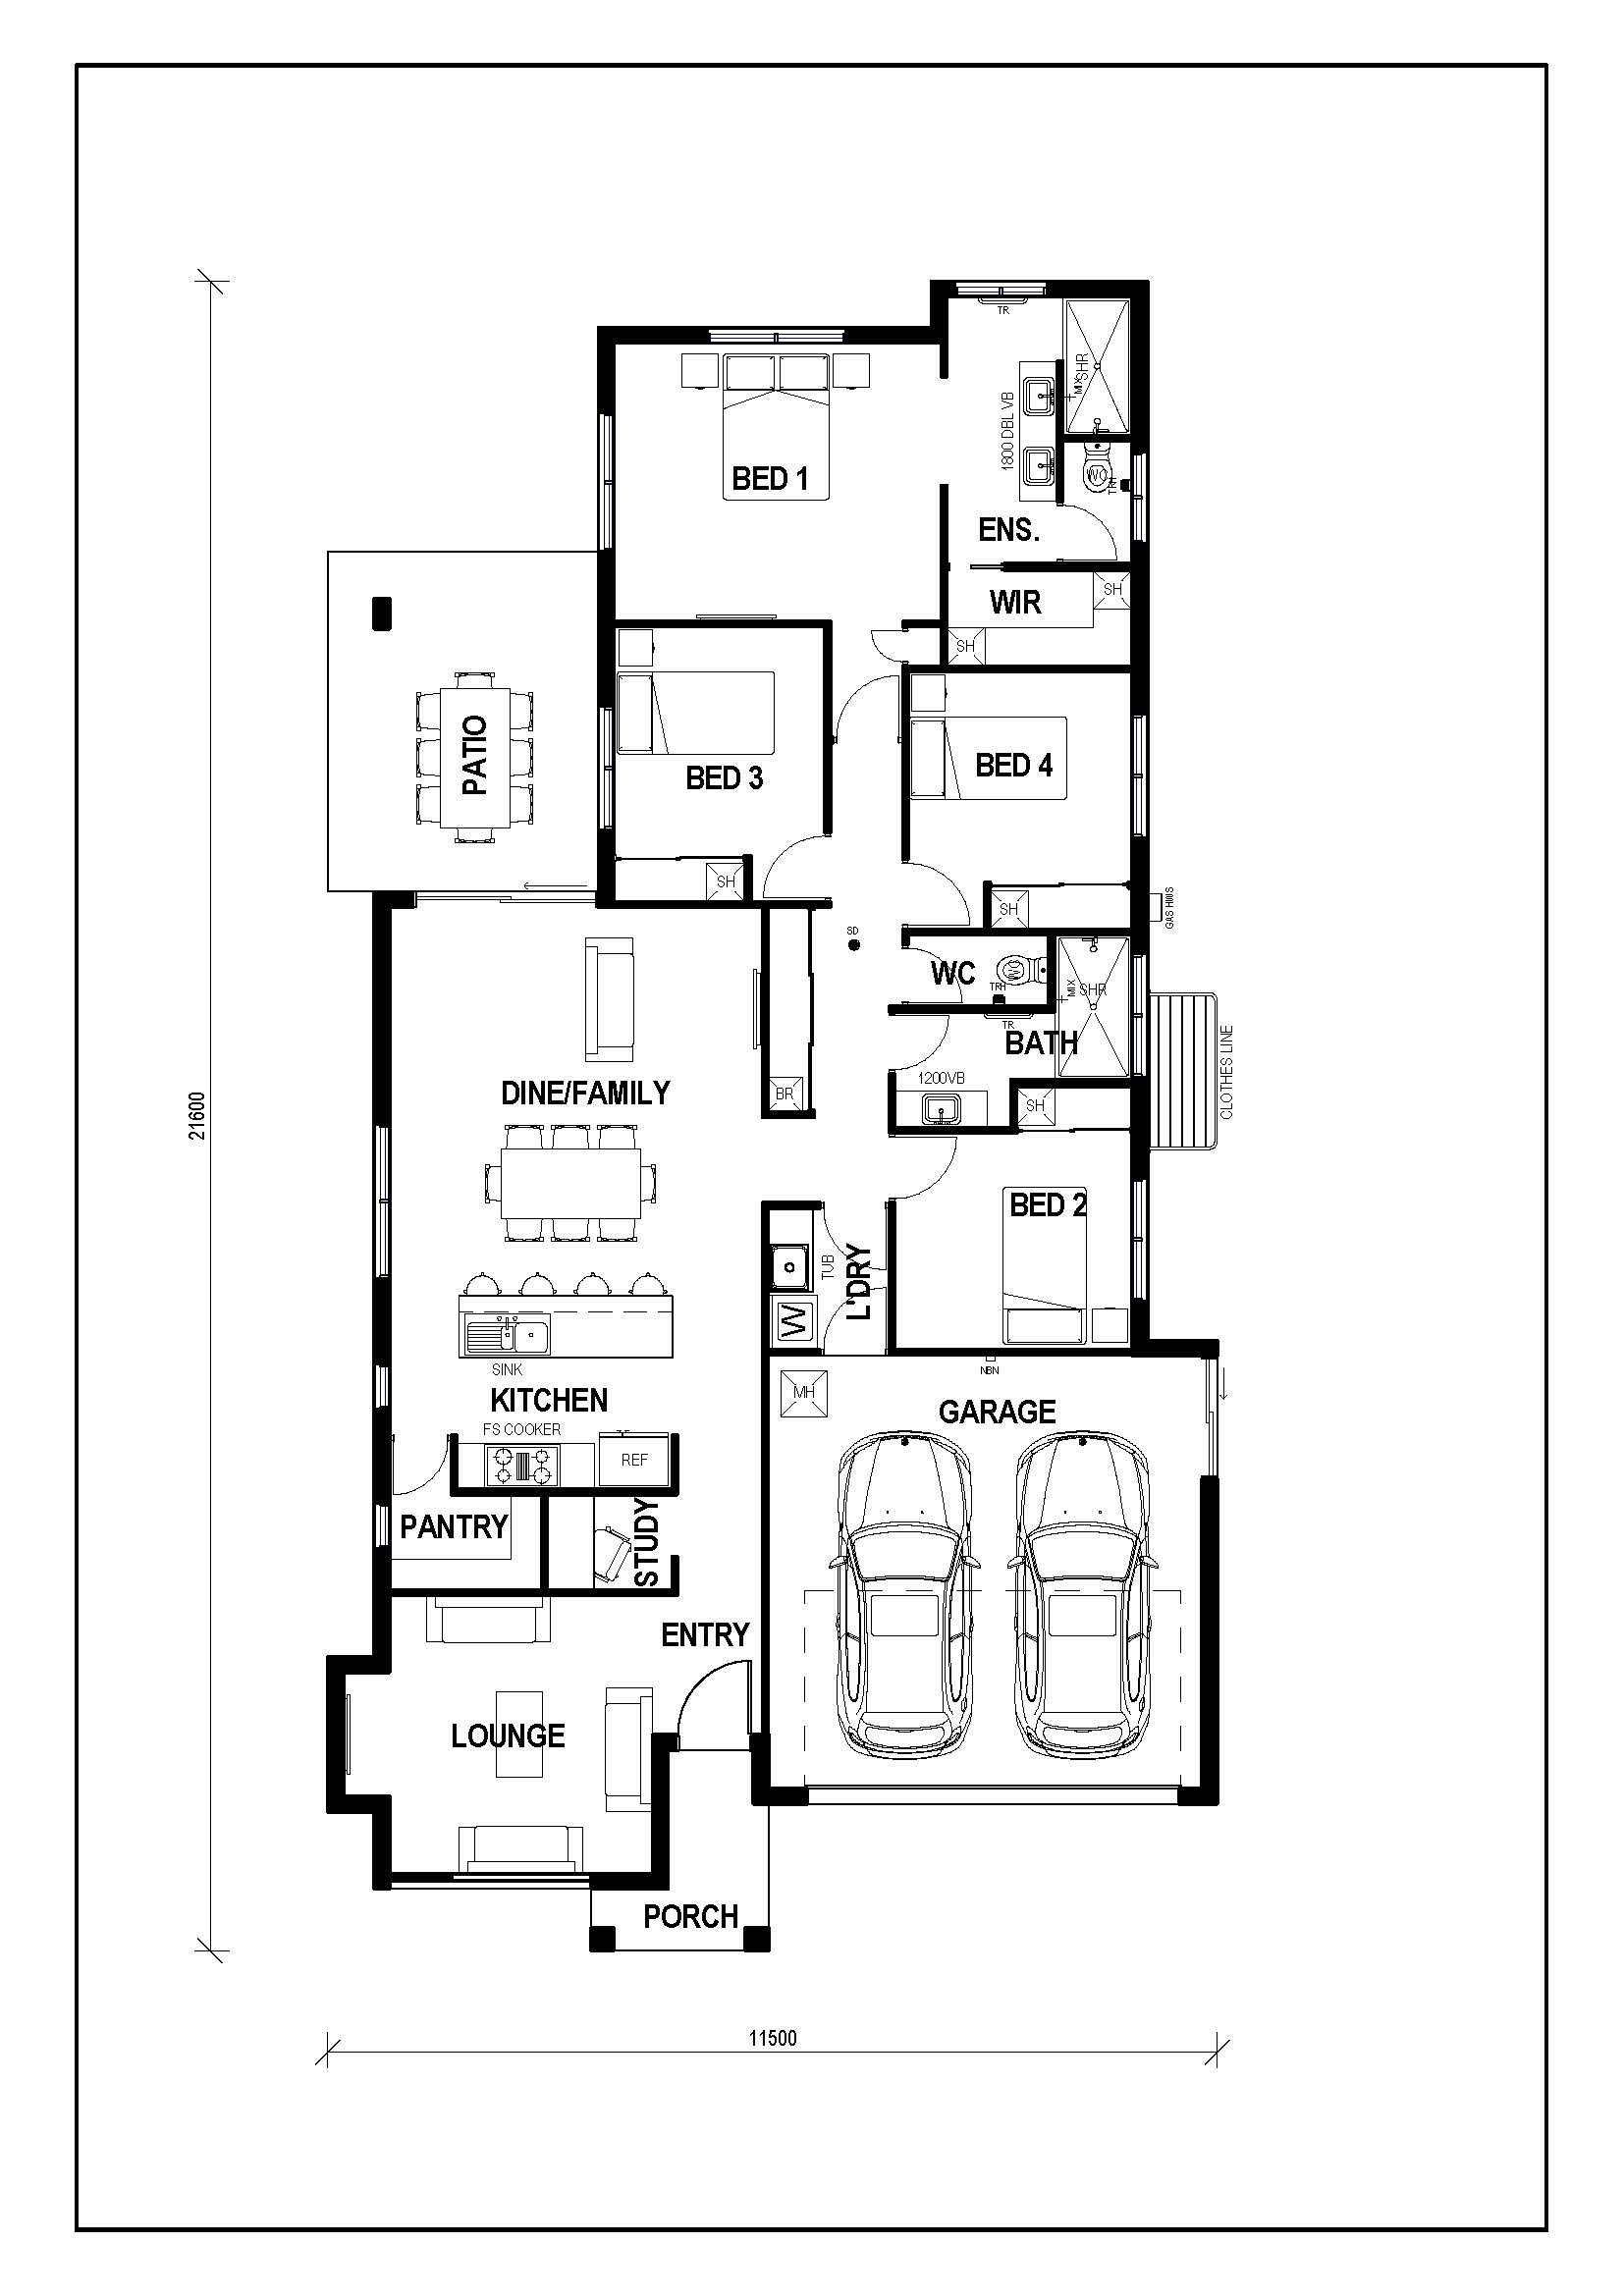 SOMERSET A Floorplan.jpg